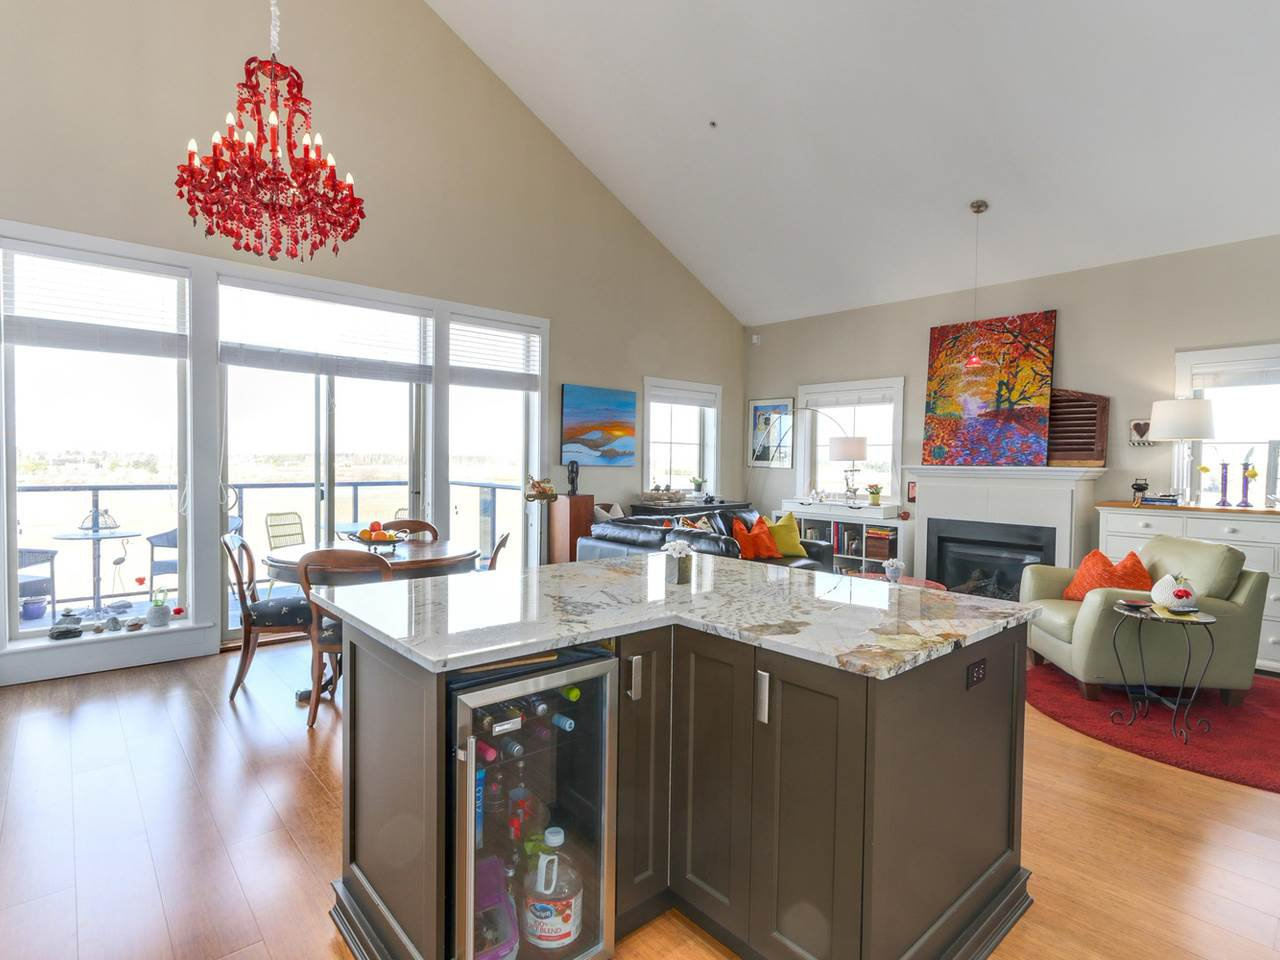 "Photo 6: Photos: 419 6233 LONDON Road in Richmond: Steveston South Condo for sale in ""LONDON STATION ONE"" : MLS®# R2133663"